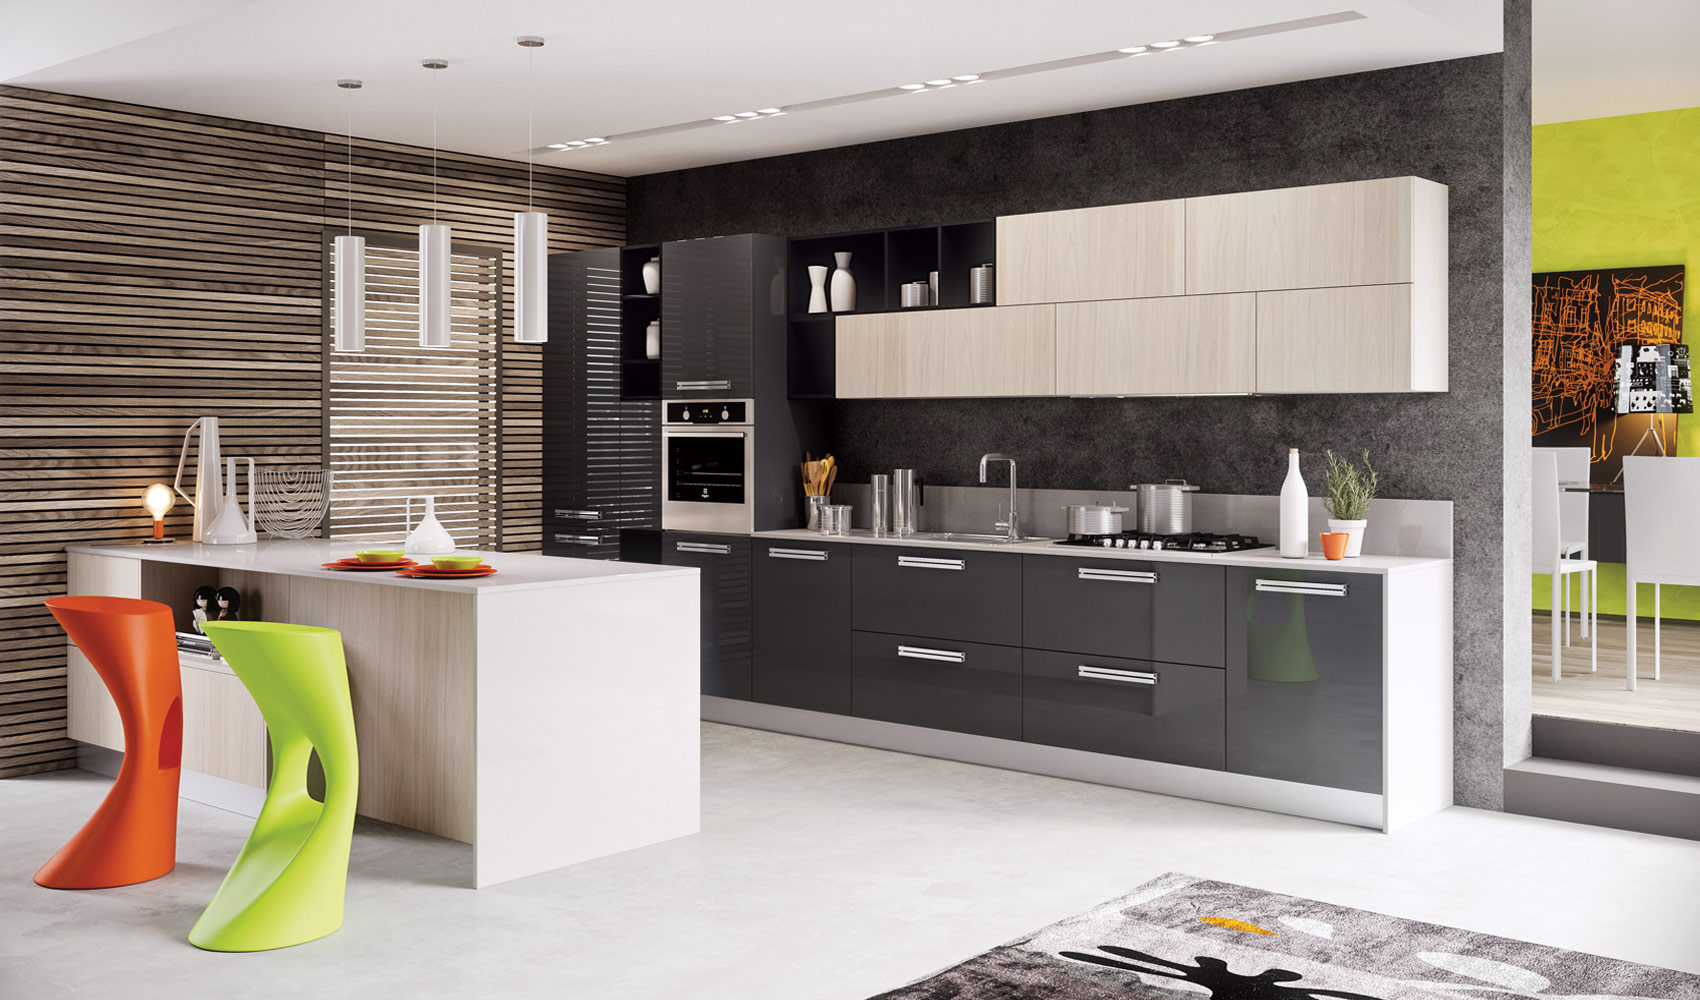 Contemporary kitchen design interior design ideas for Contemporary kitchen ideas